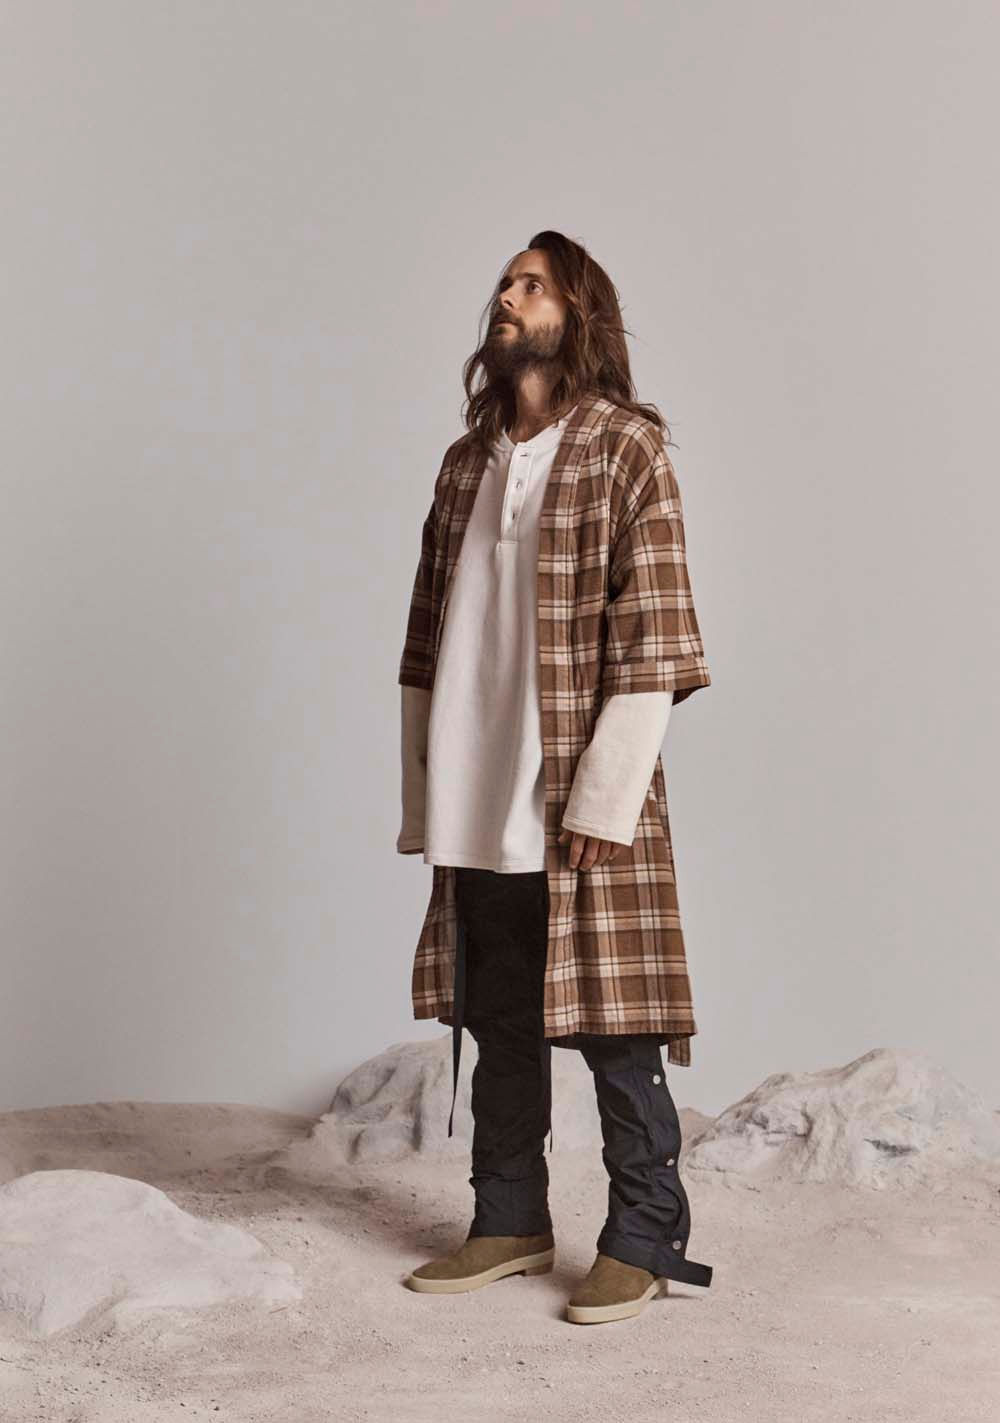 https_%2F%2Fhypebeast.com%2Fimage%2F2018%2F09%2Ffear-of-god-6-sixth-collection-jared-leto-nike-27.jpg